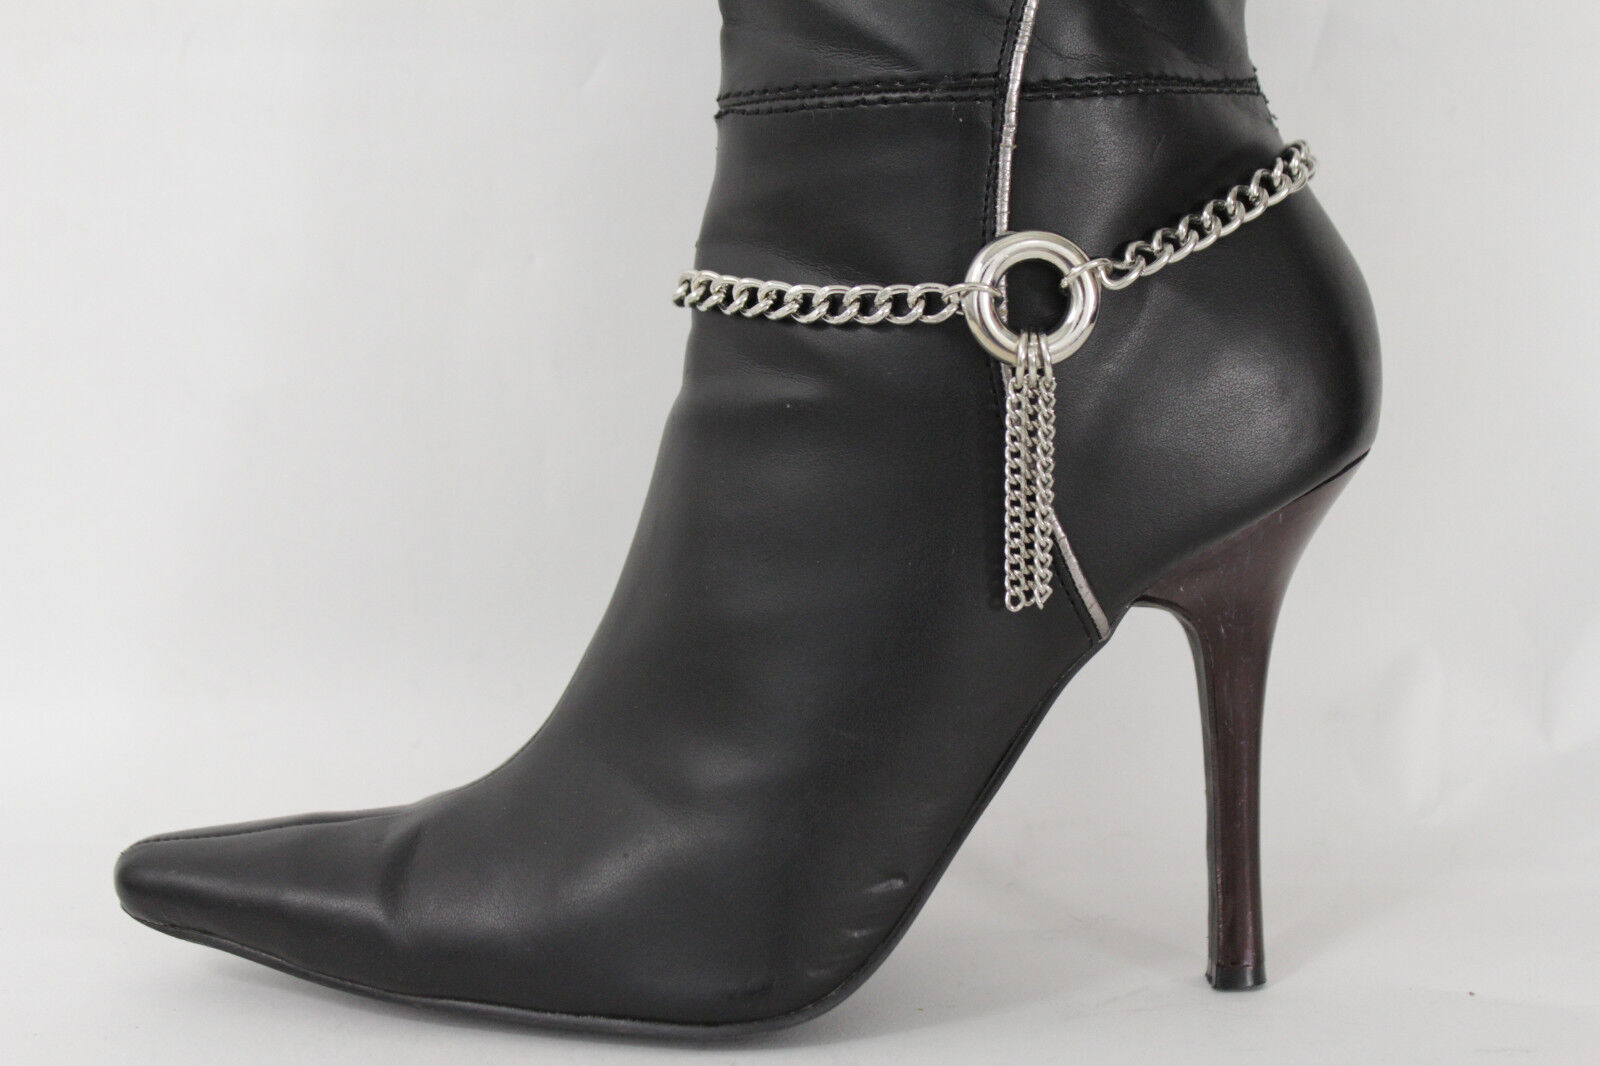 Women Fashion Boot Bracelet Metal Chains Silver Fringes RIng Anklet Shoe Charm